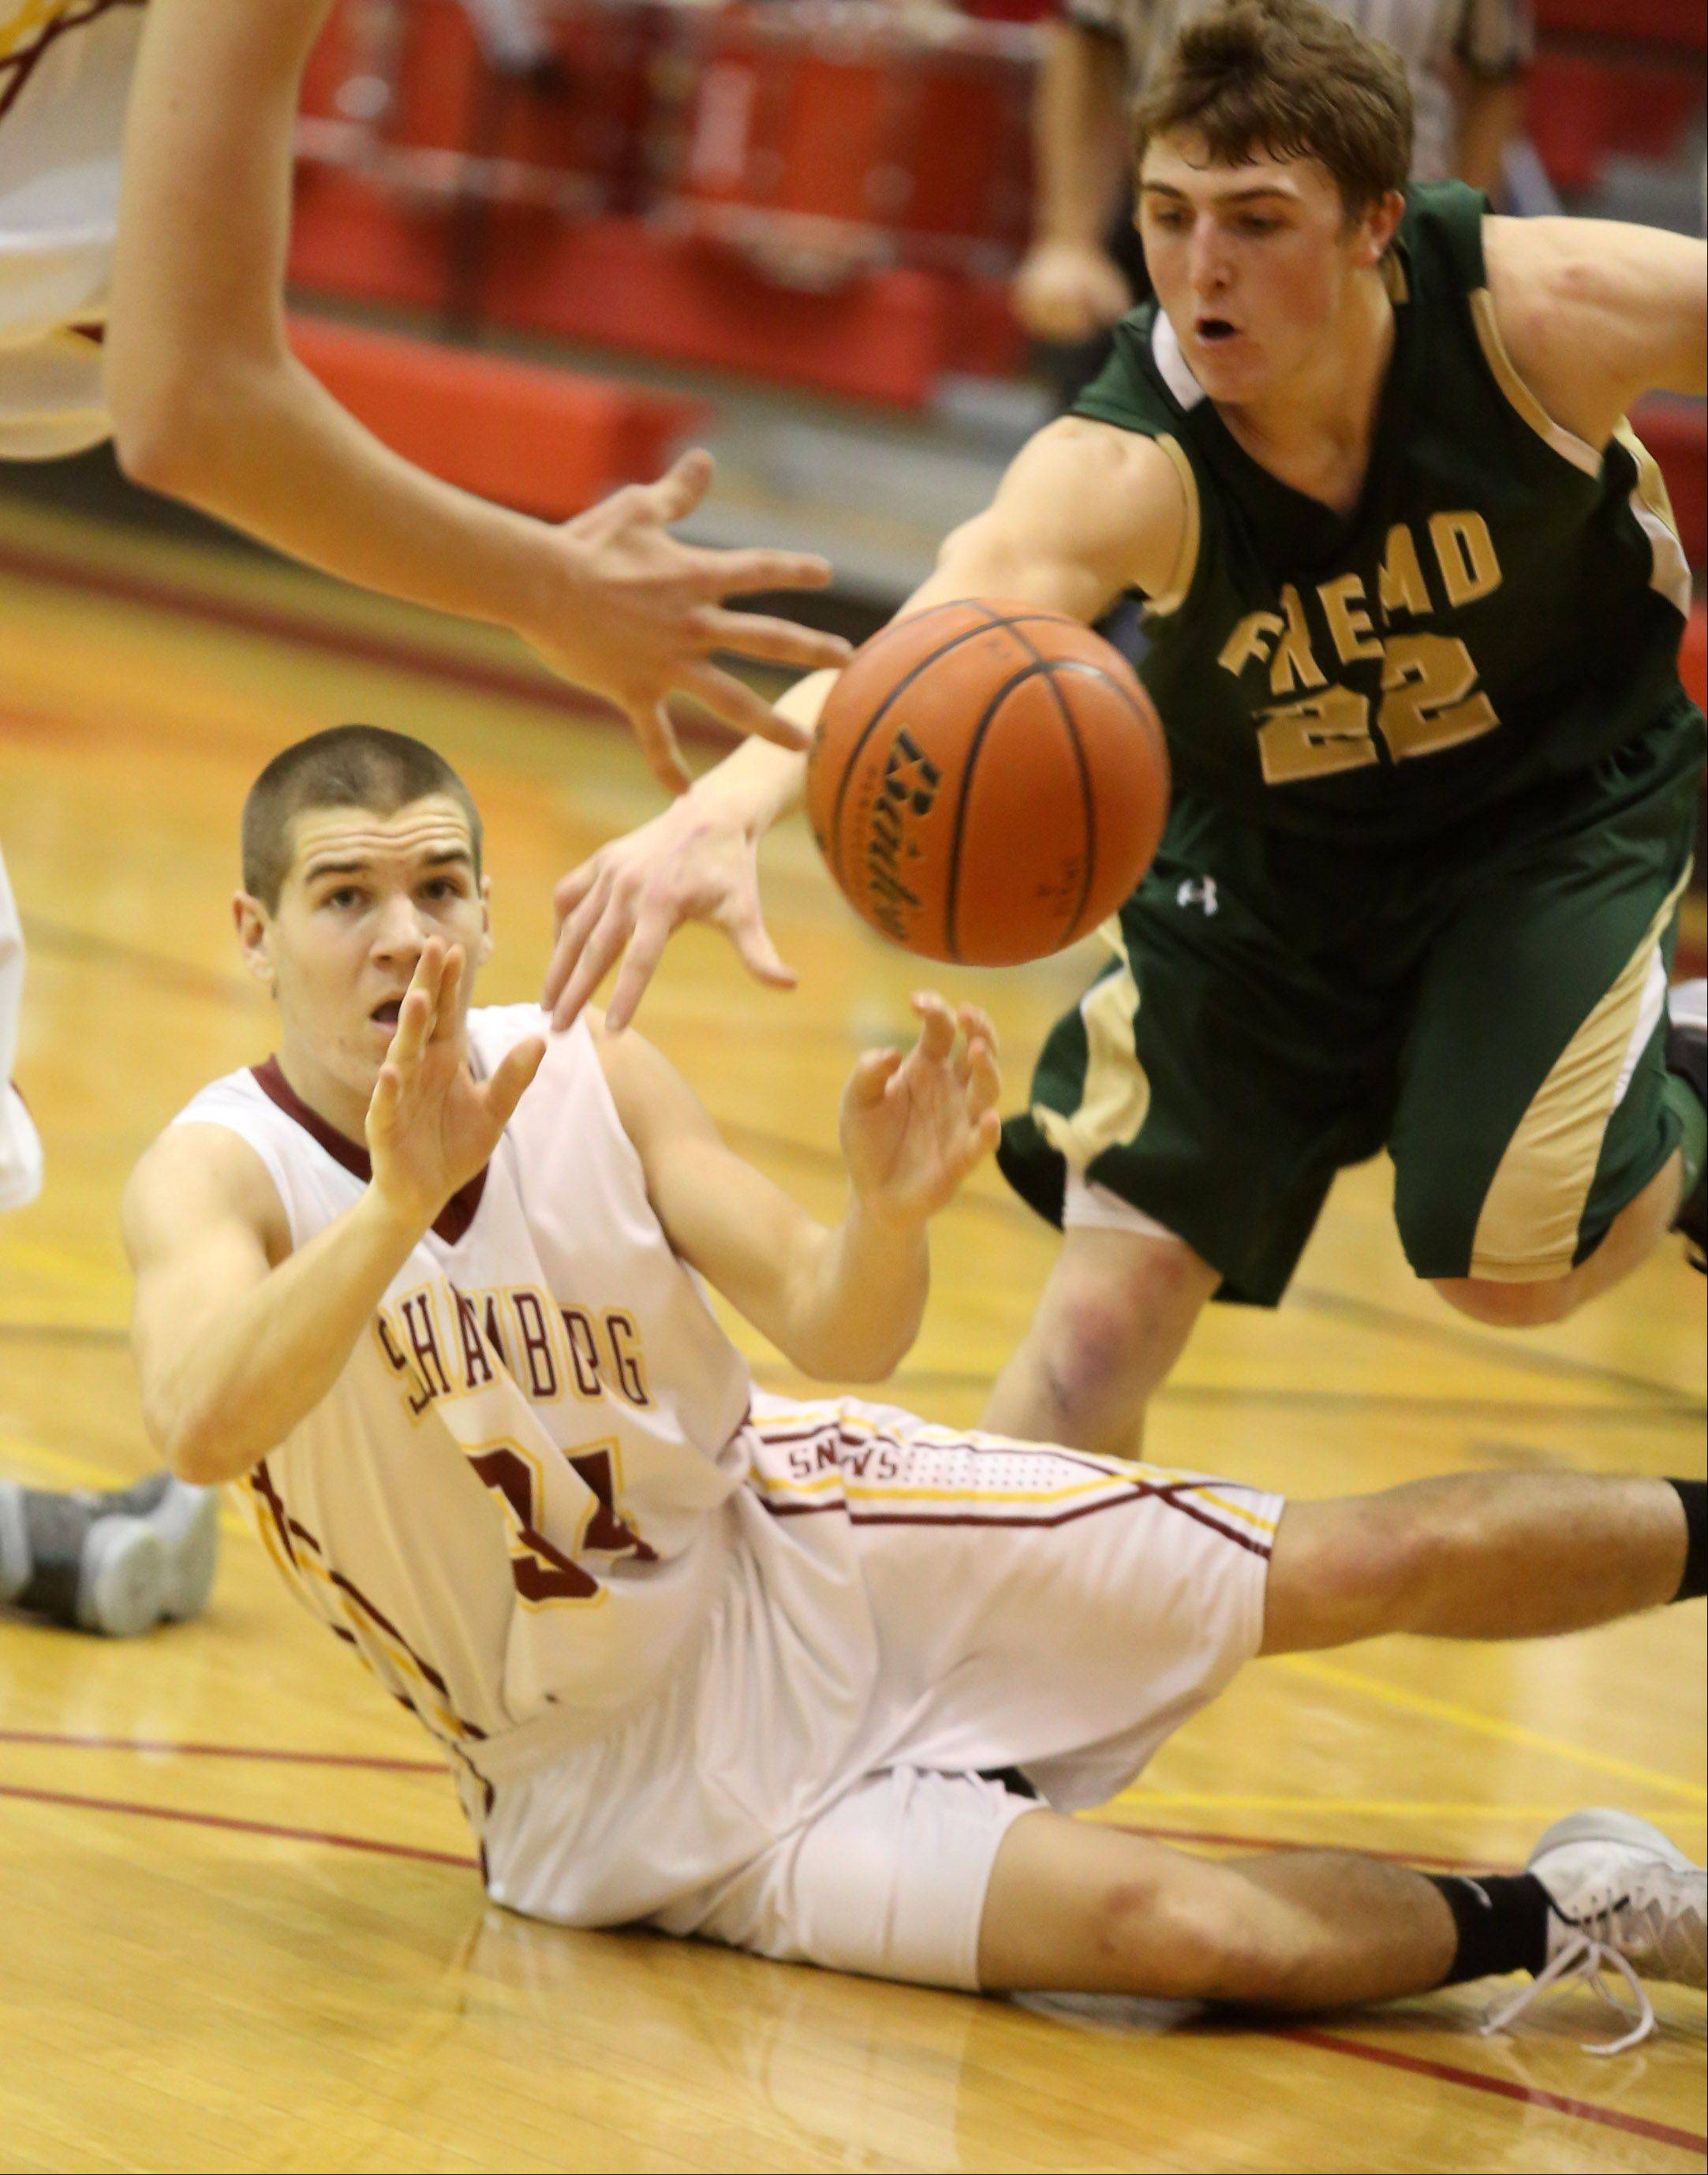 Schaumburg guard Christopher Mullaney passes the ball from the floor as Fremd defender Garrett Groot reaches for the ball.